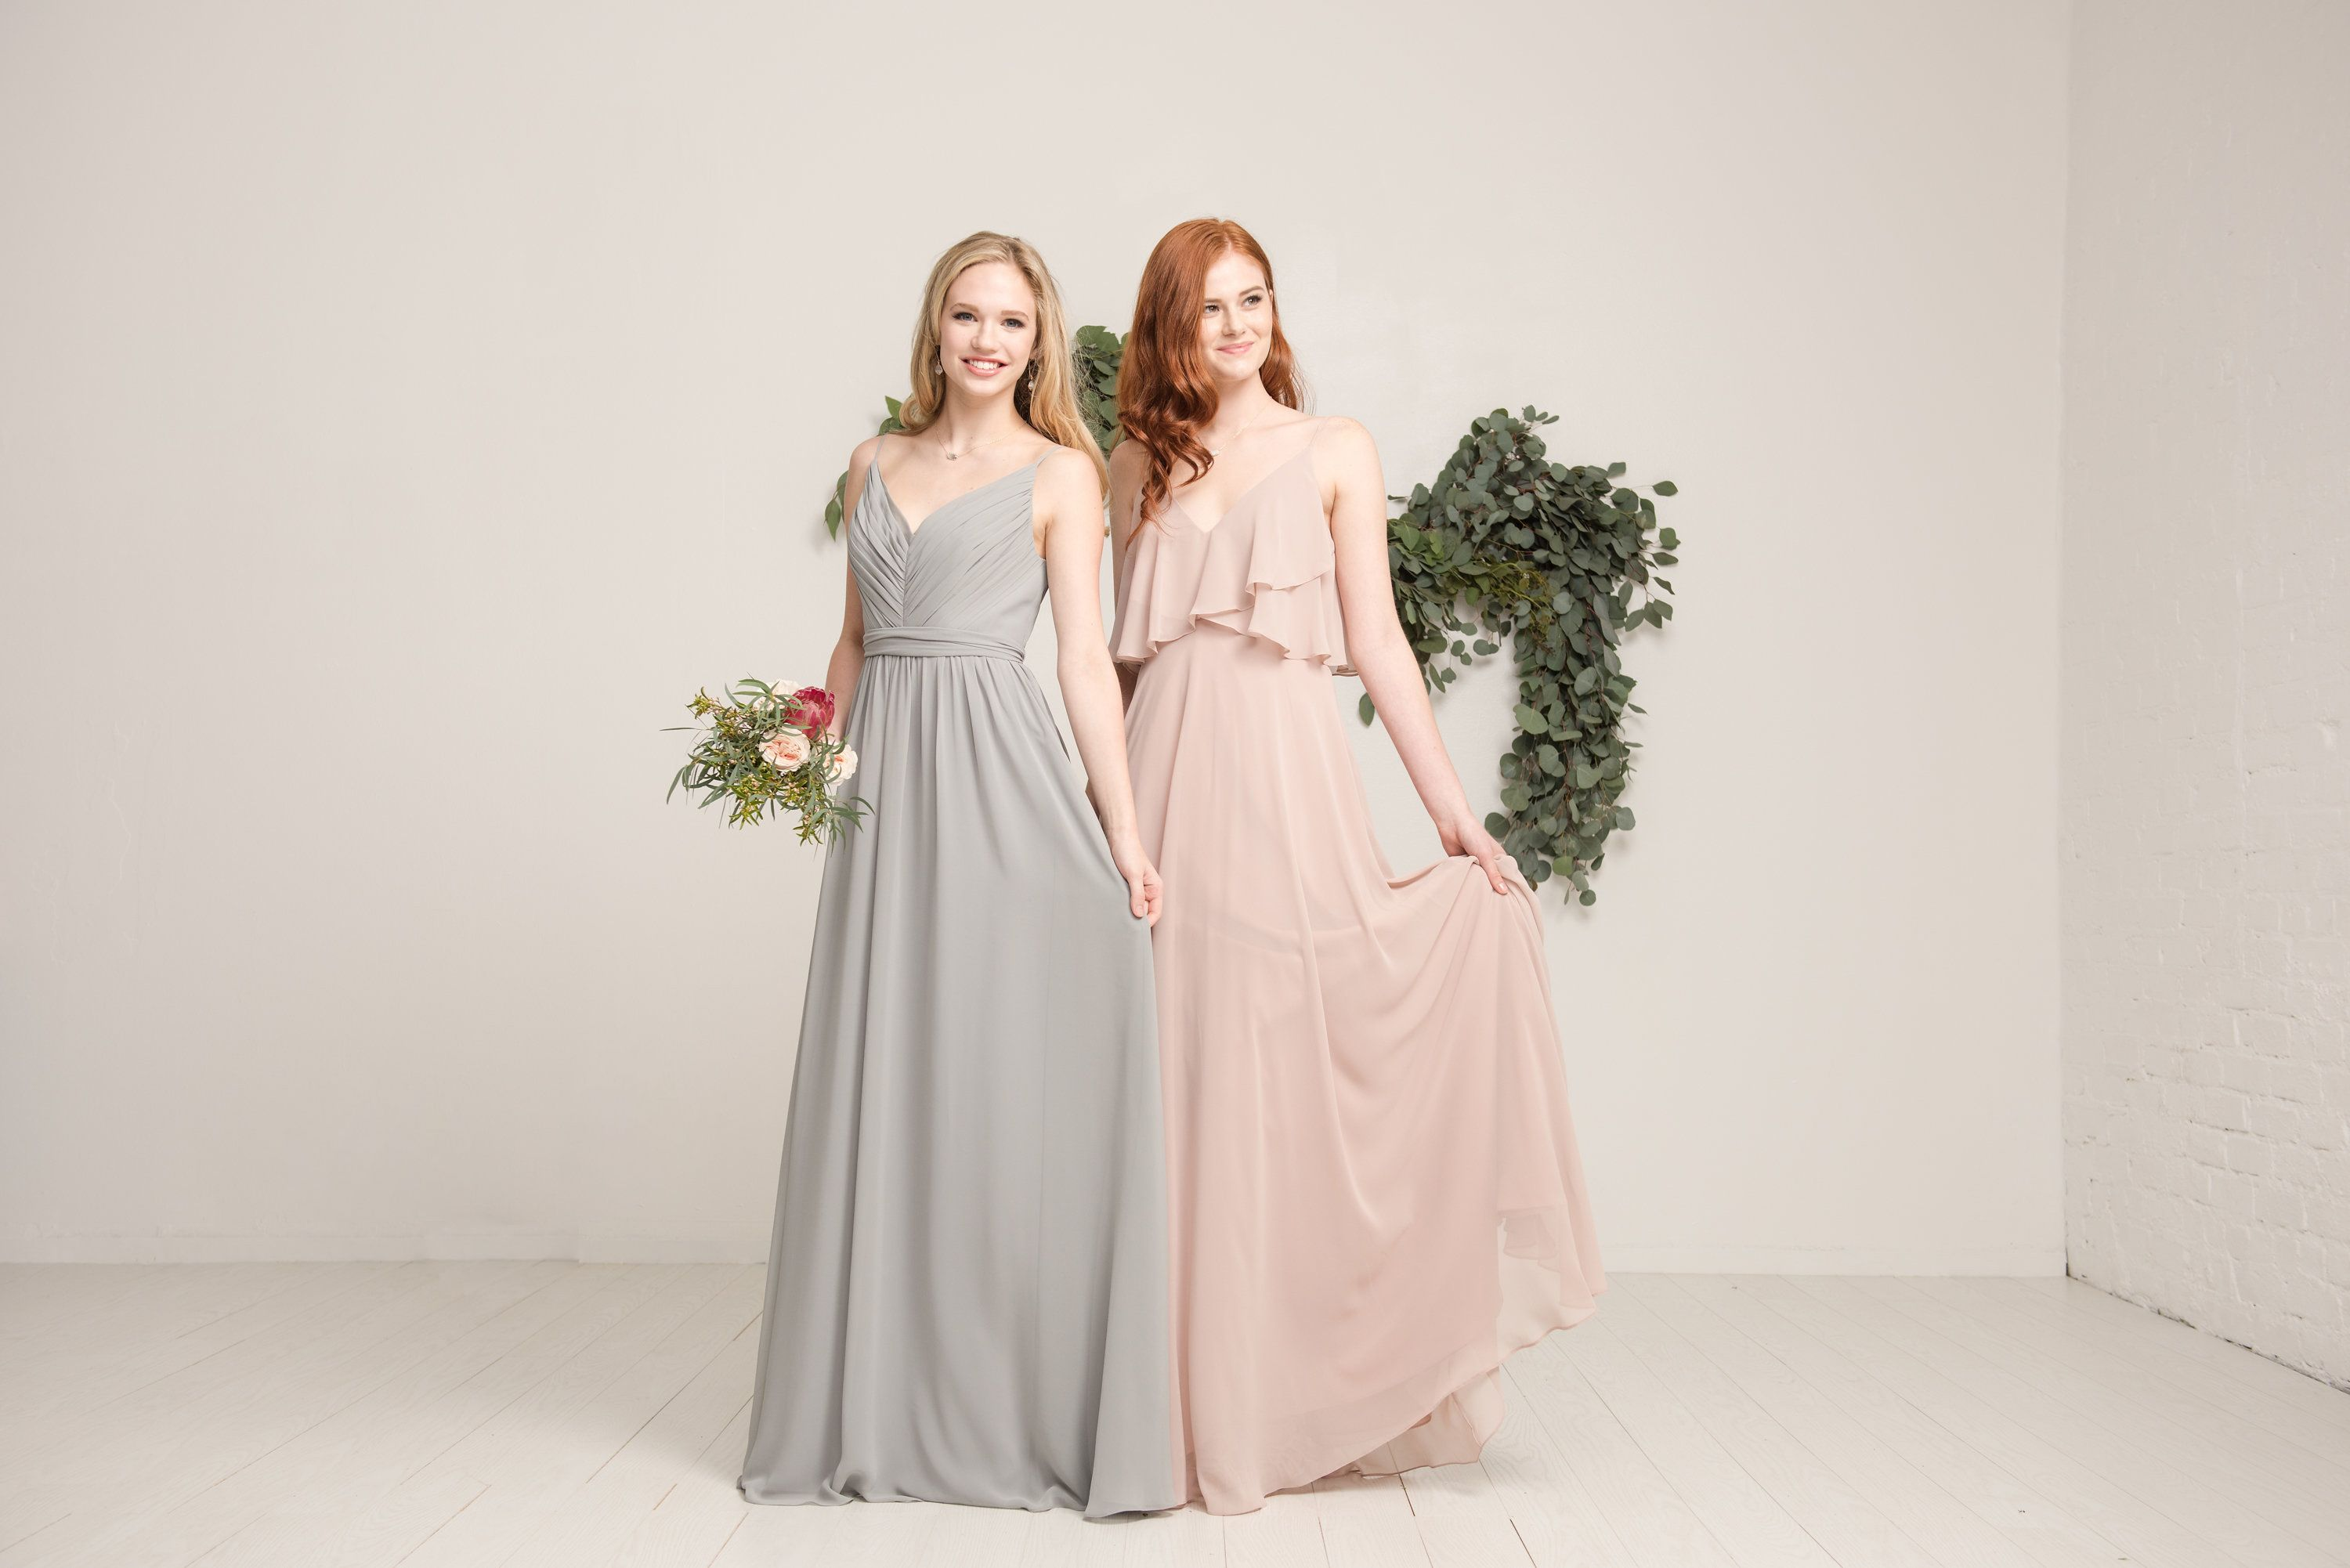 Feminine and flowy bridesmaid dresses and separates designed by feminine and flowy bridesmaid dresses and separates designed by love tanya blush grey ombrellifo Gallery